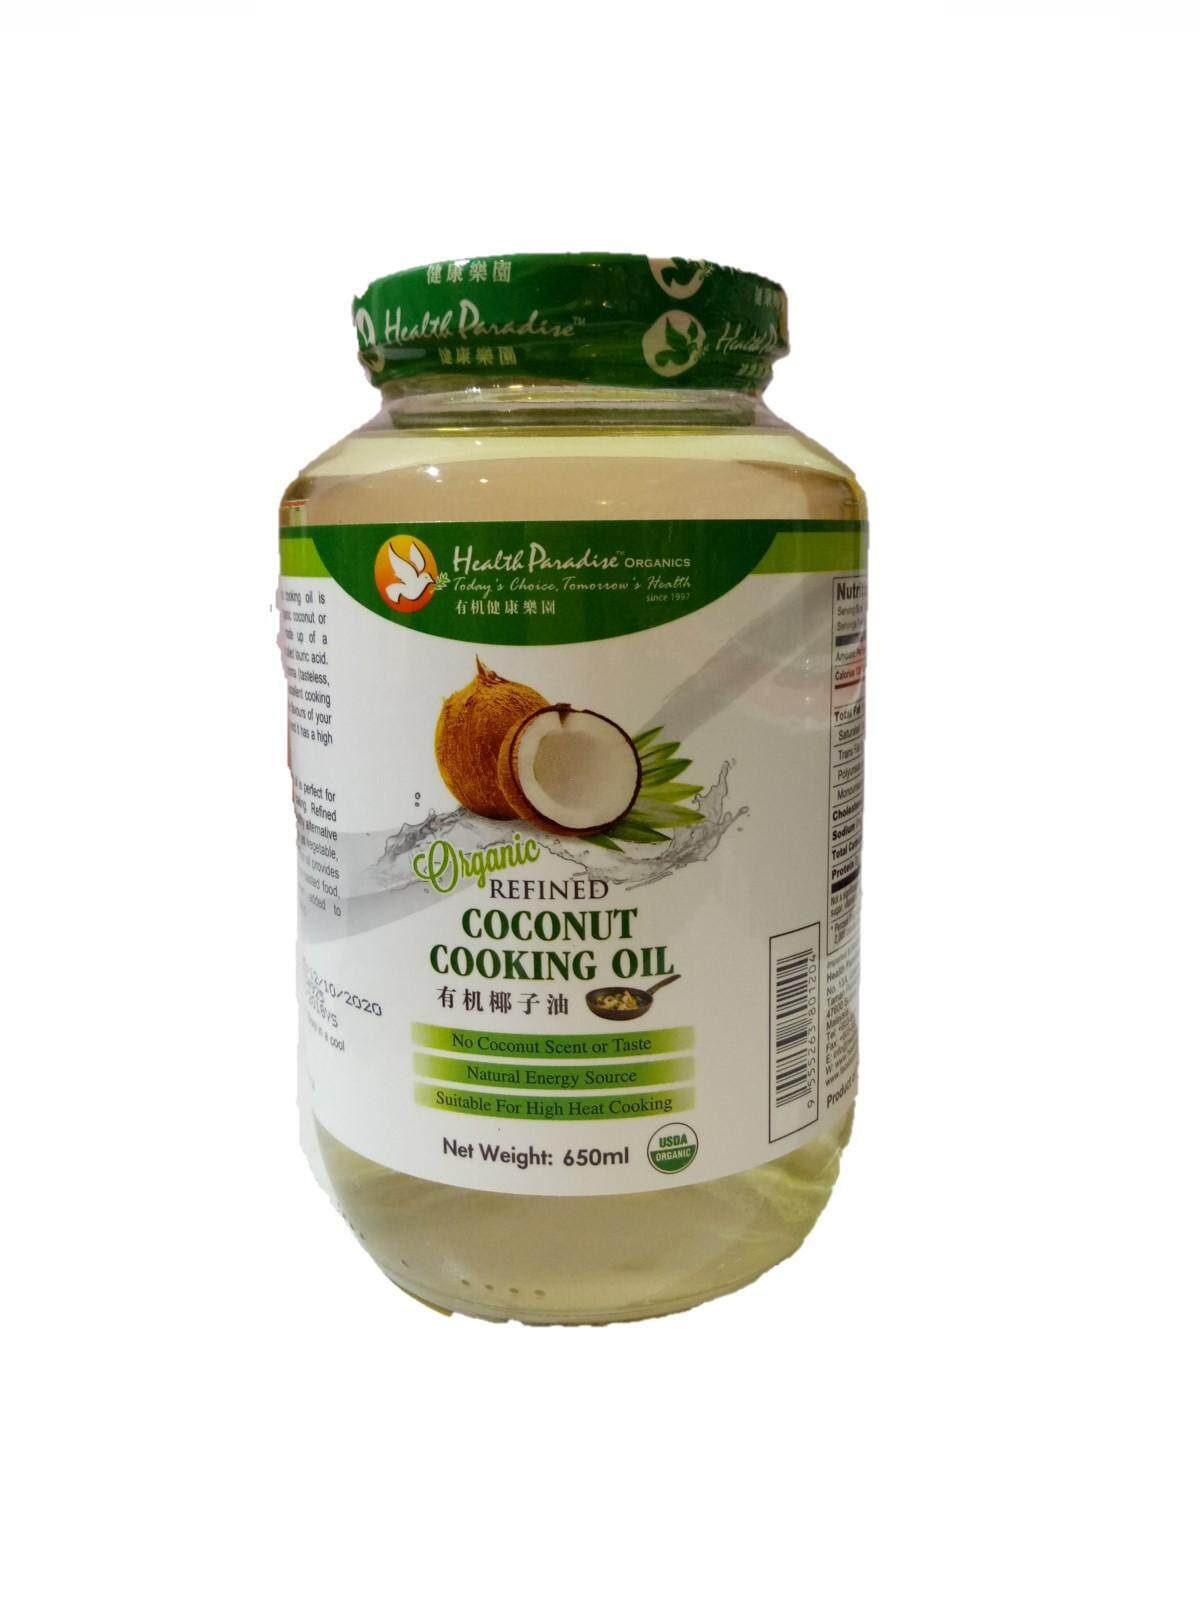 Health Paradise Organic Refined Coconut Cooking Oil 650ML (USDA ORGANIC)